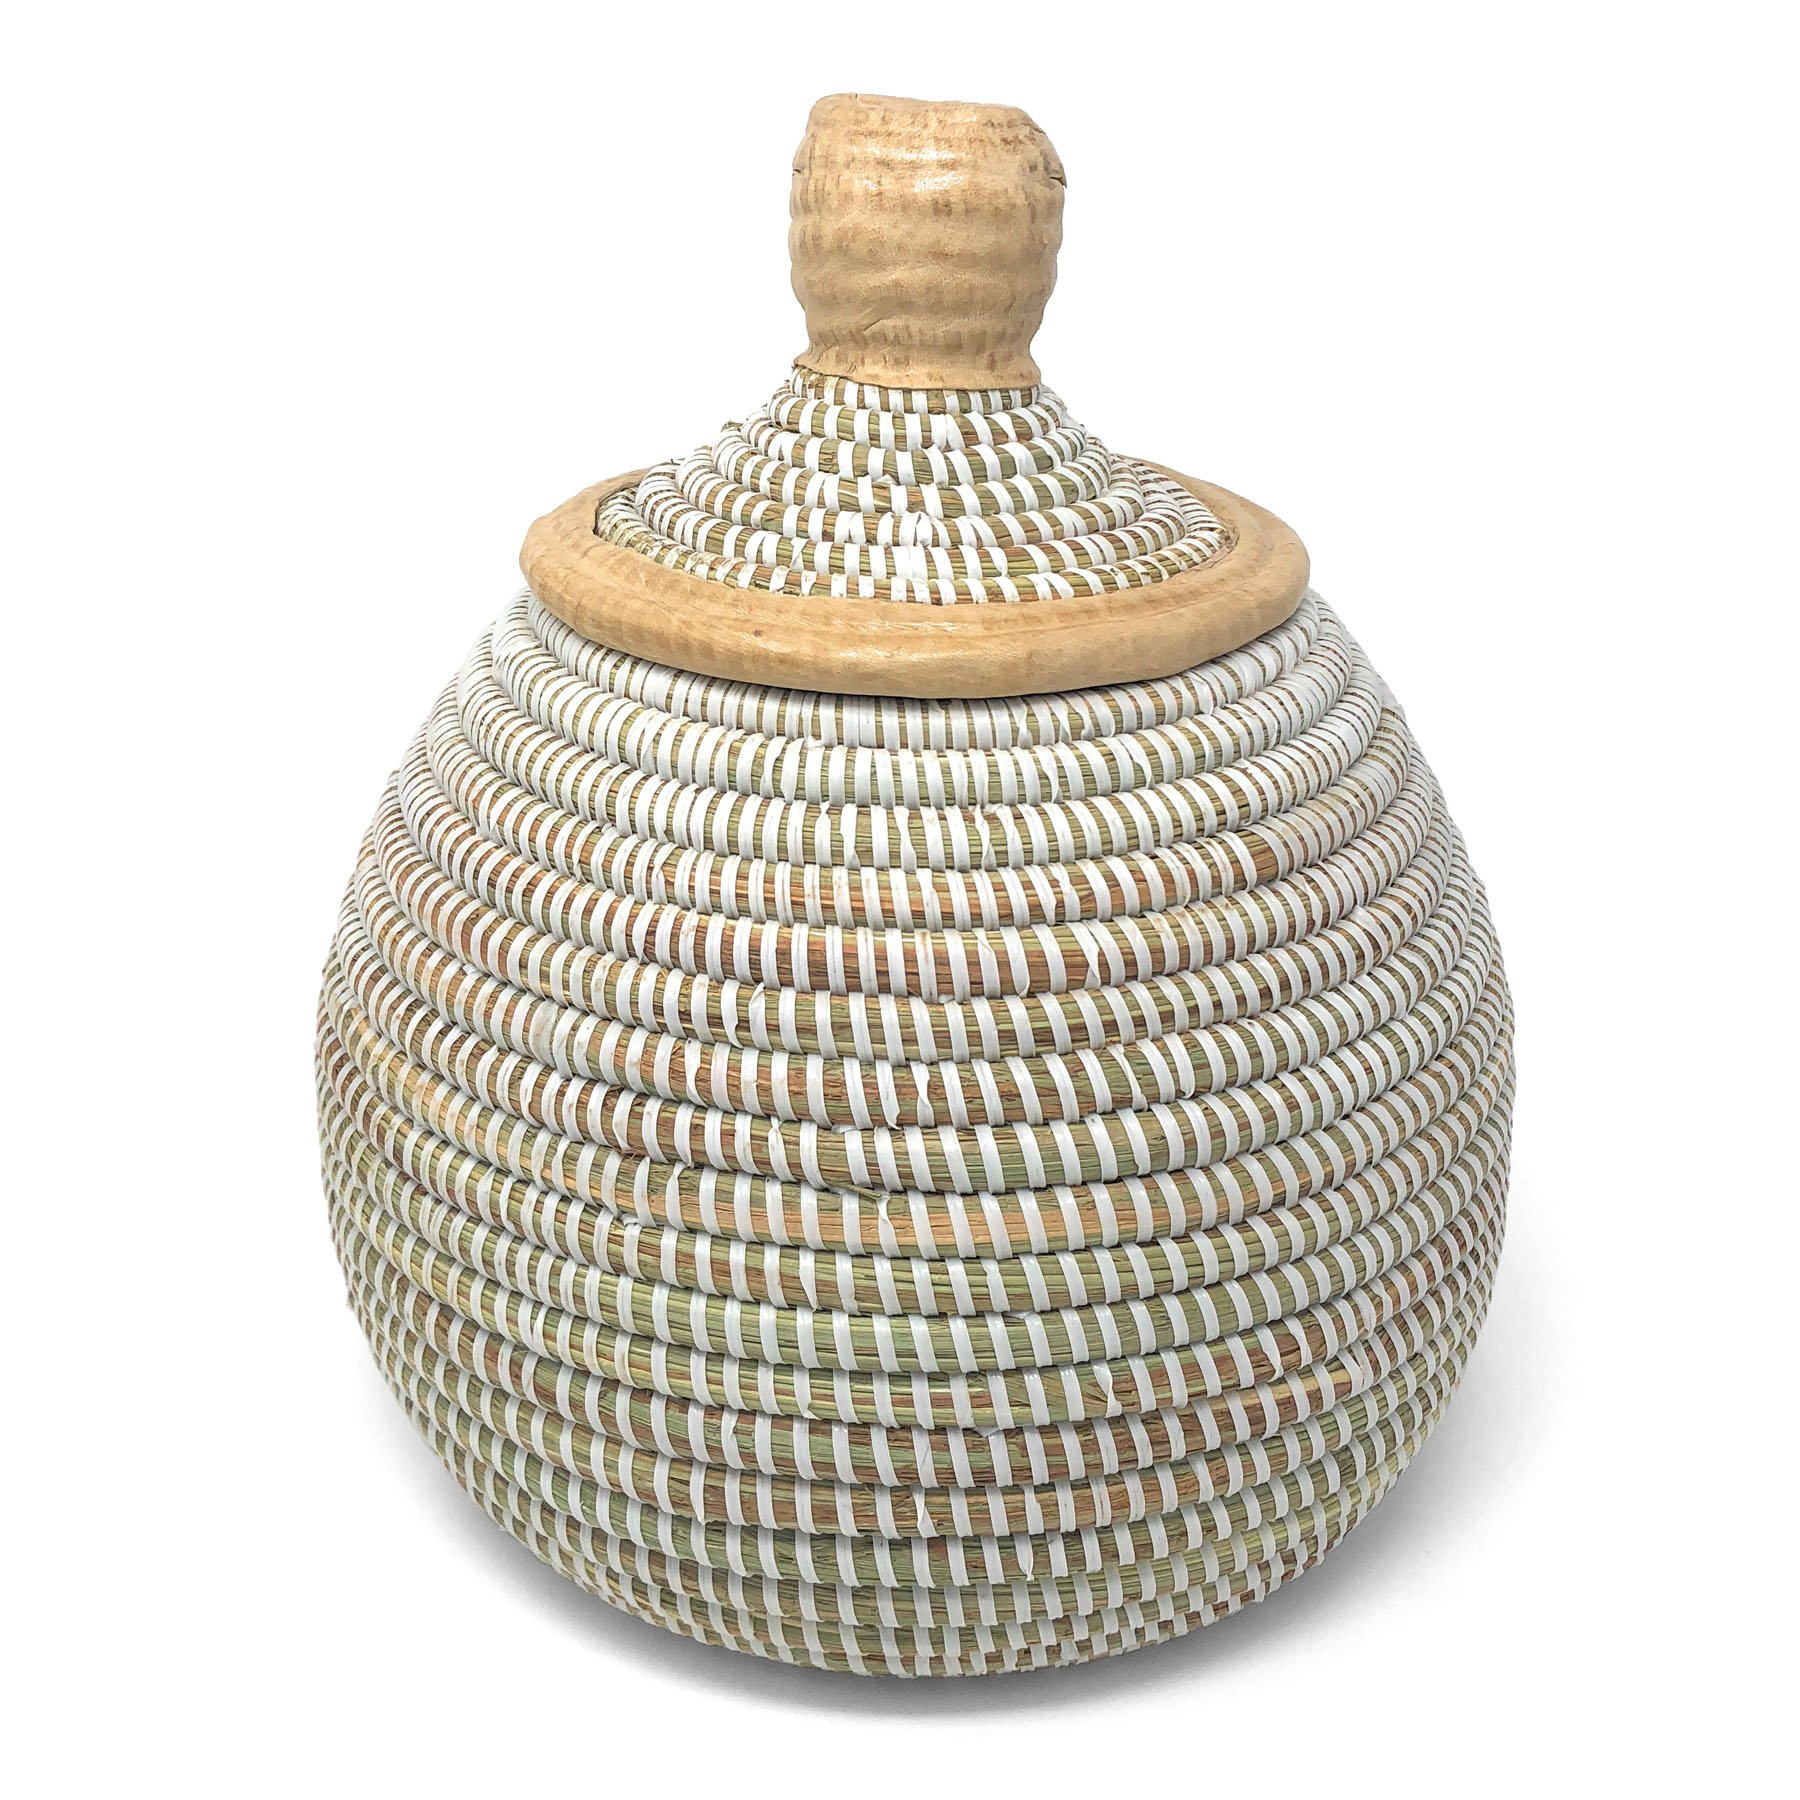 Swahili African Modern African Fair Trade Handwoven Gourd Basket with Leather Accents, White